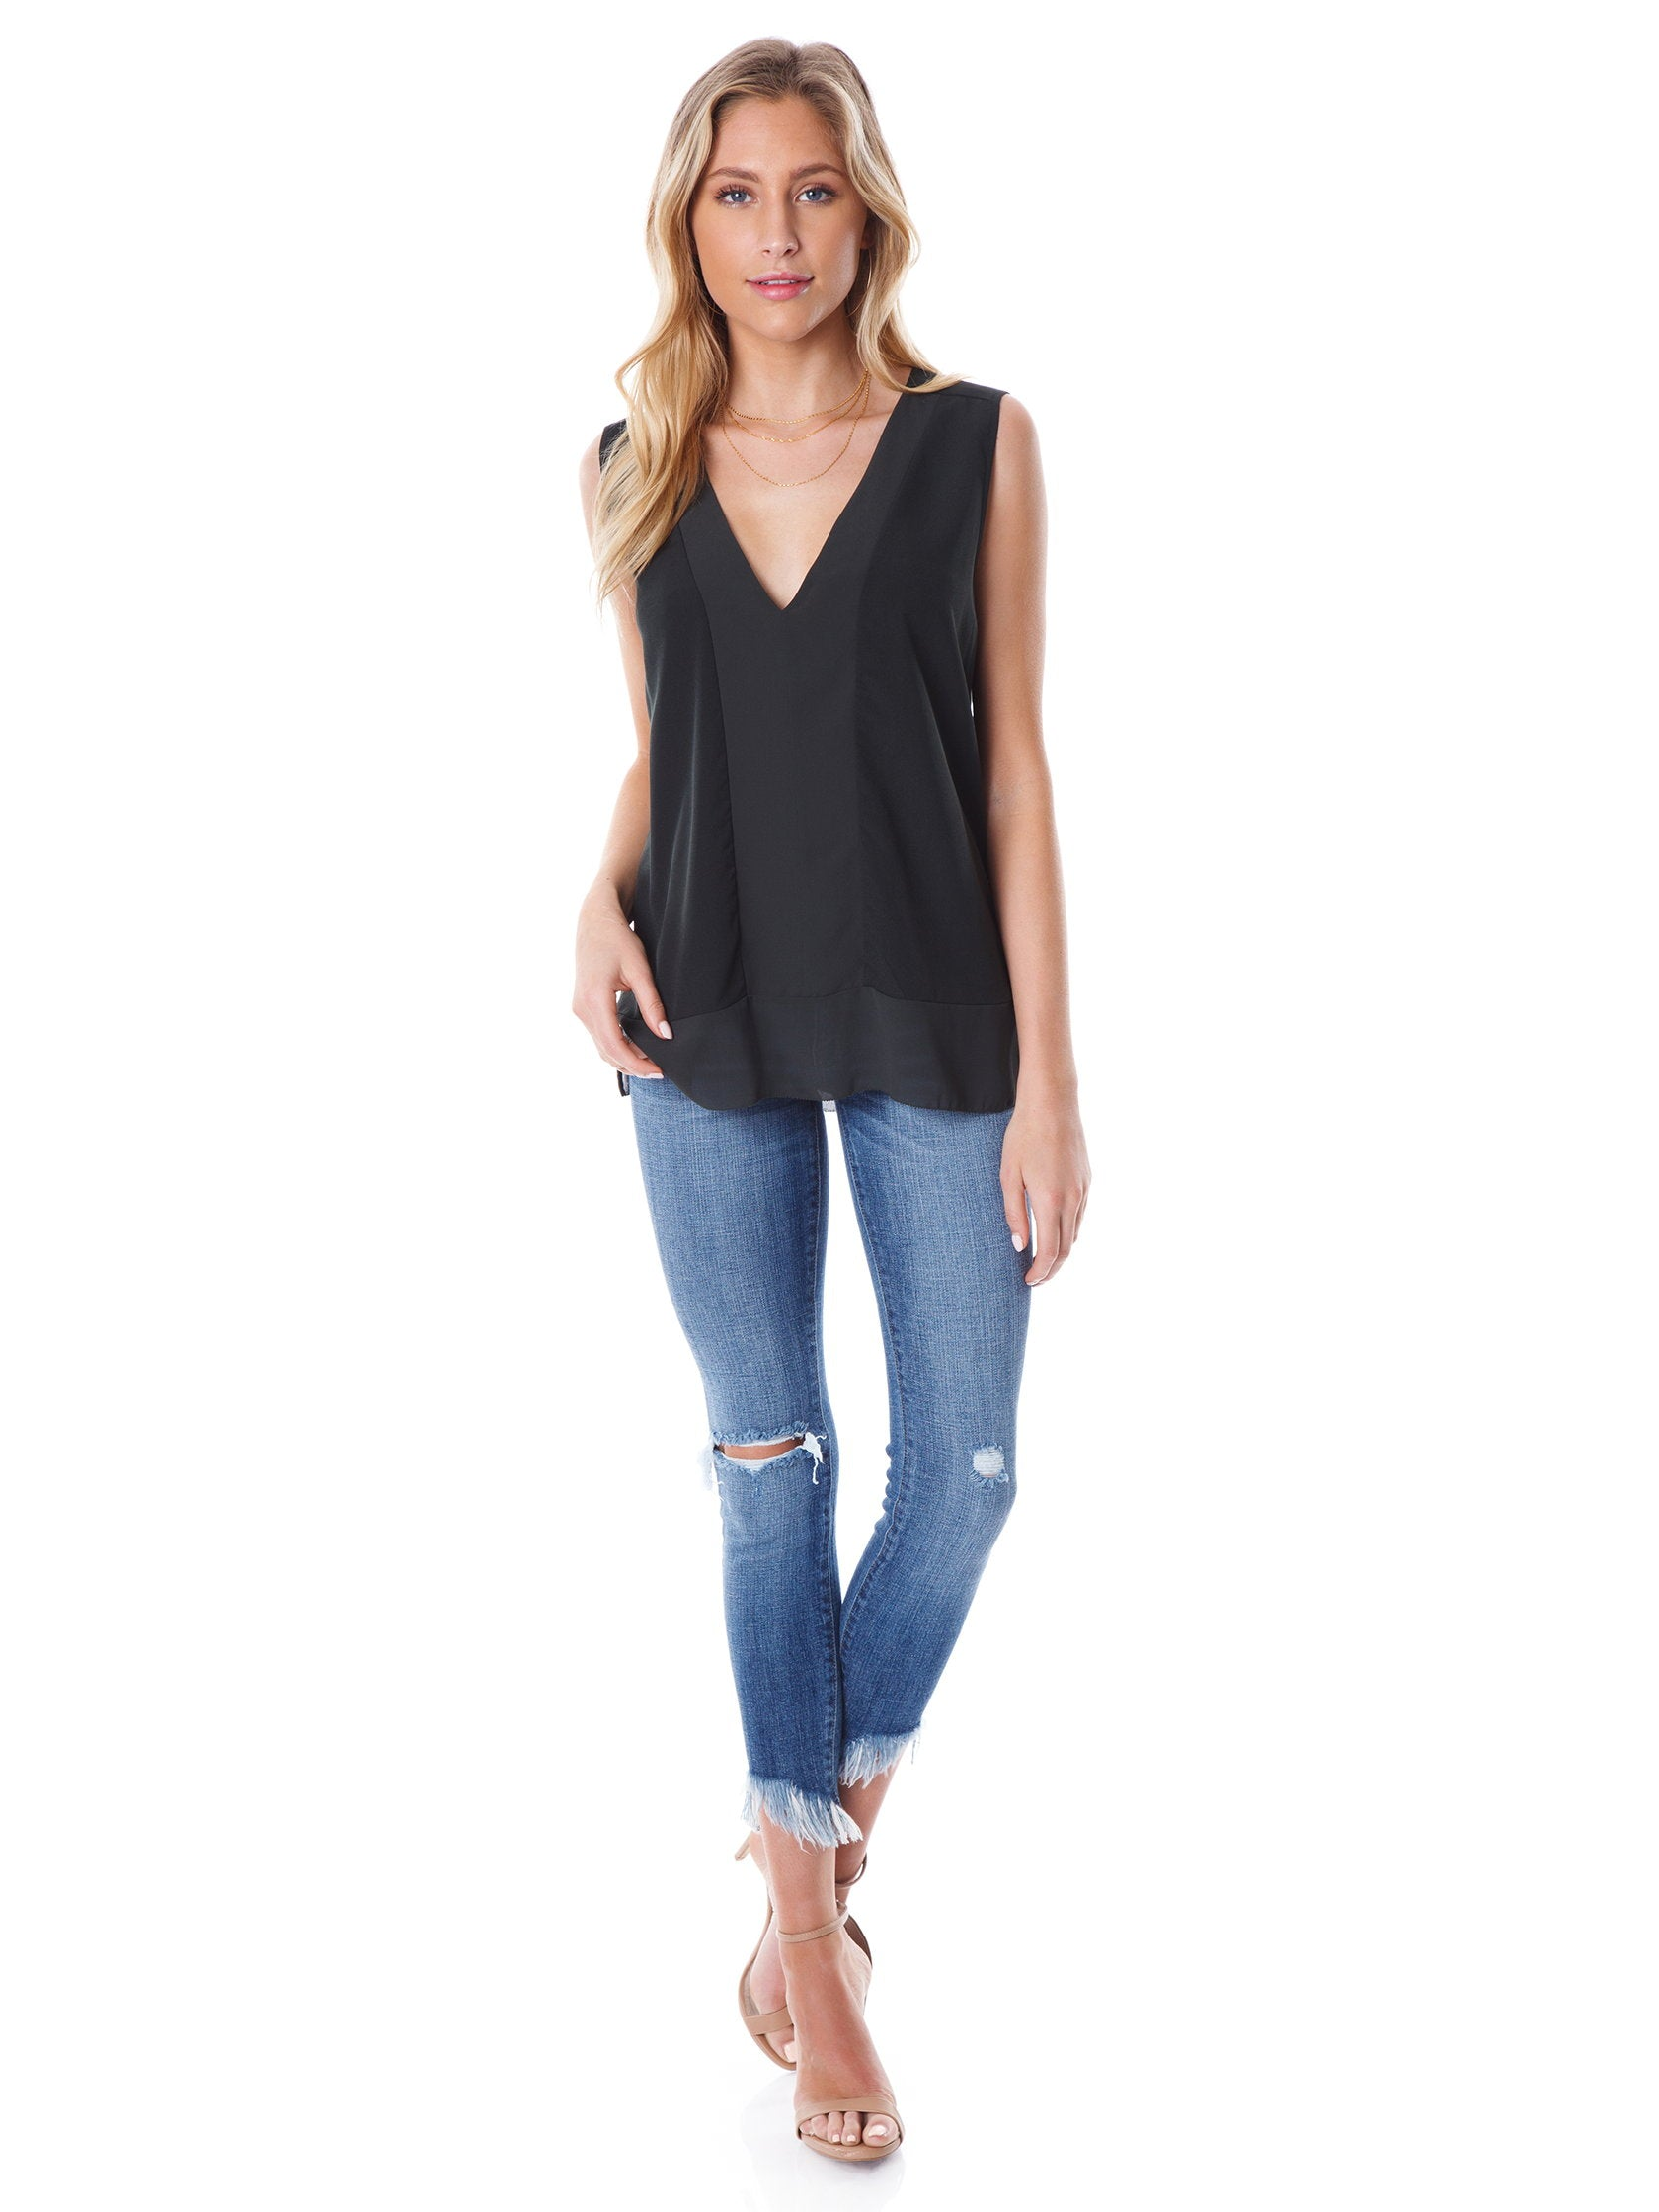 Girl wearing a top rental from French Connection called Classic Crepe Light Sleeveless Top